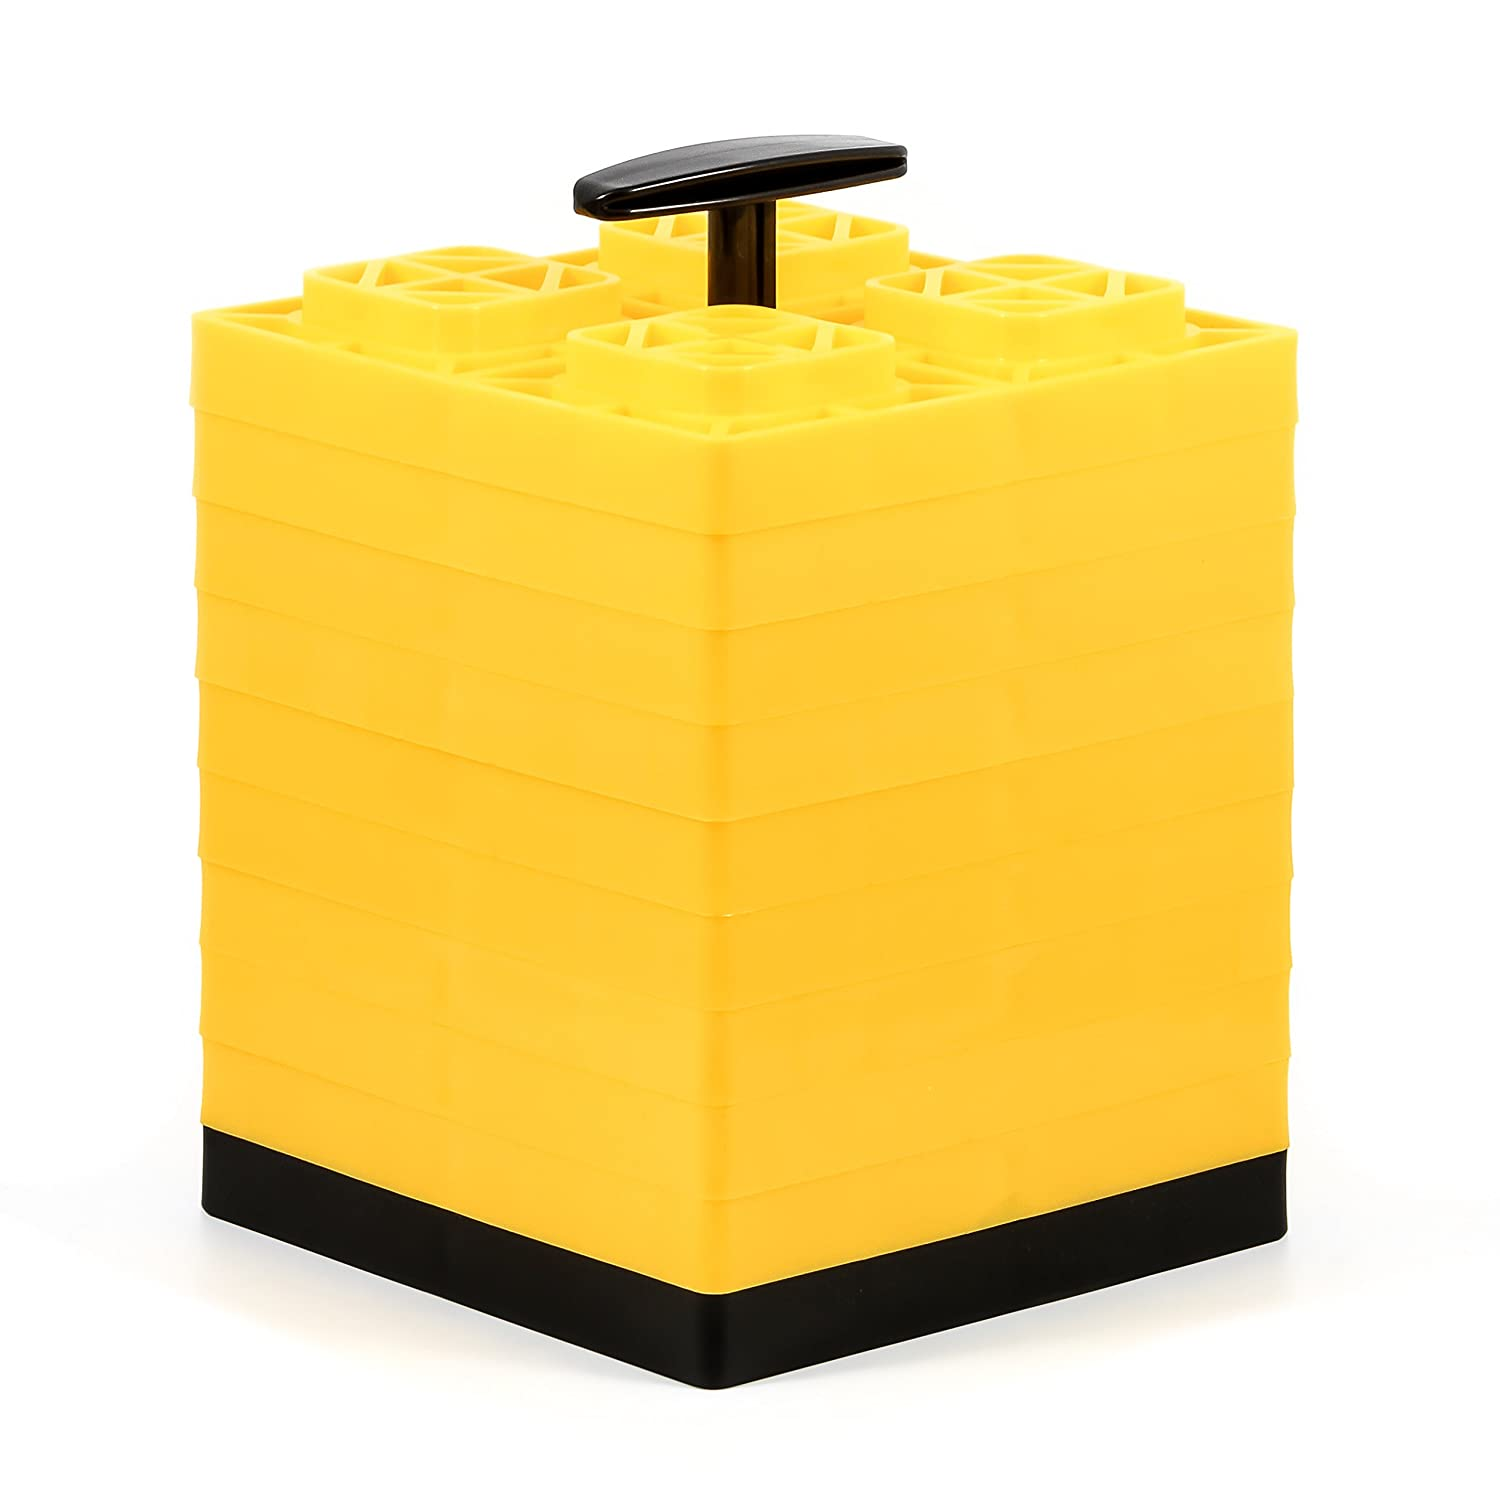 21022 Camco Fasten 2x2 Leveling Block for Single Tires-Interlocking Design Allows Stacking to Desired Height-Includes Secure T-Handle Carrying System-Yellow-10 Pack